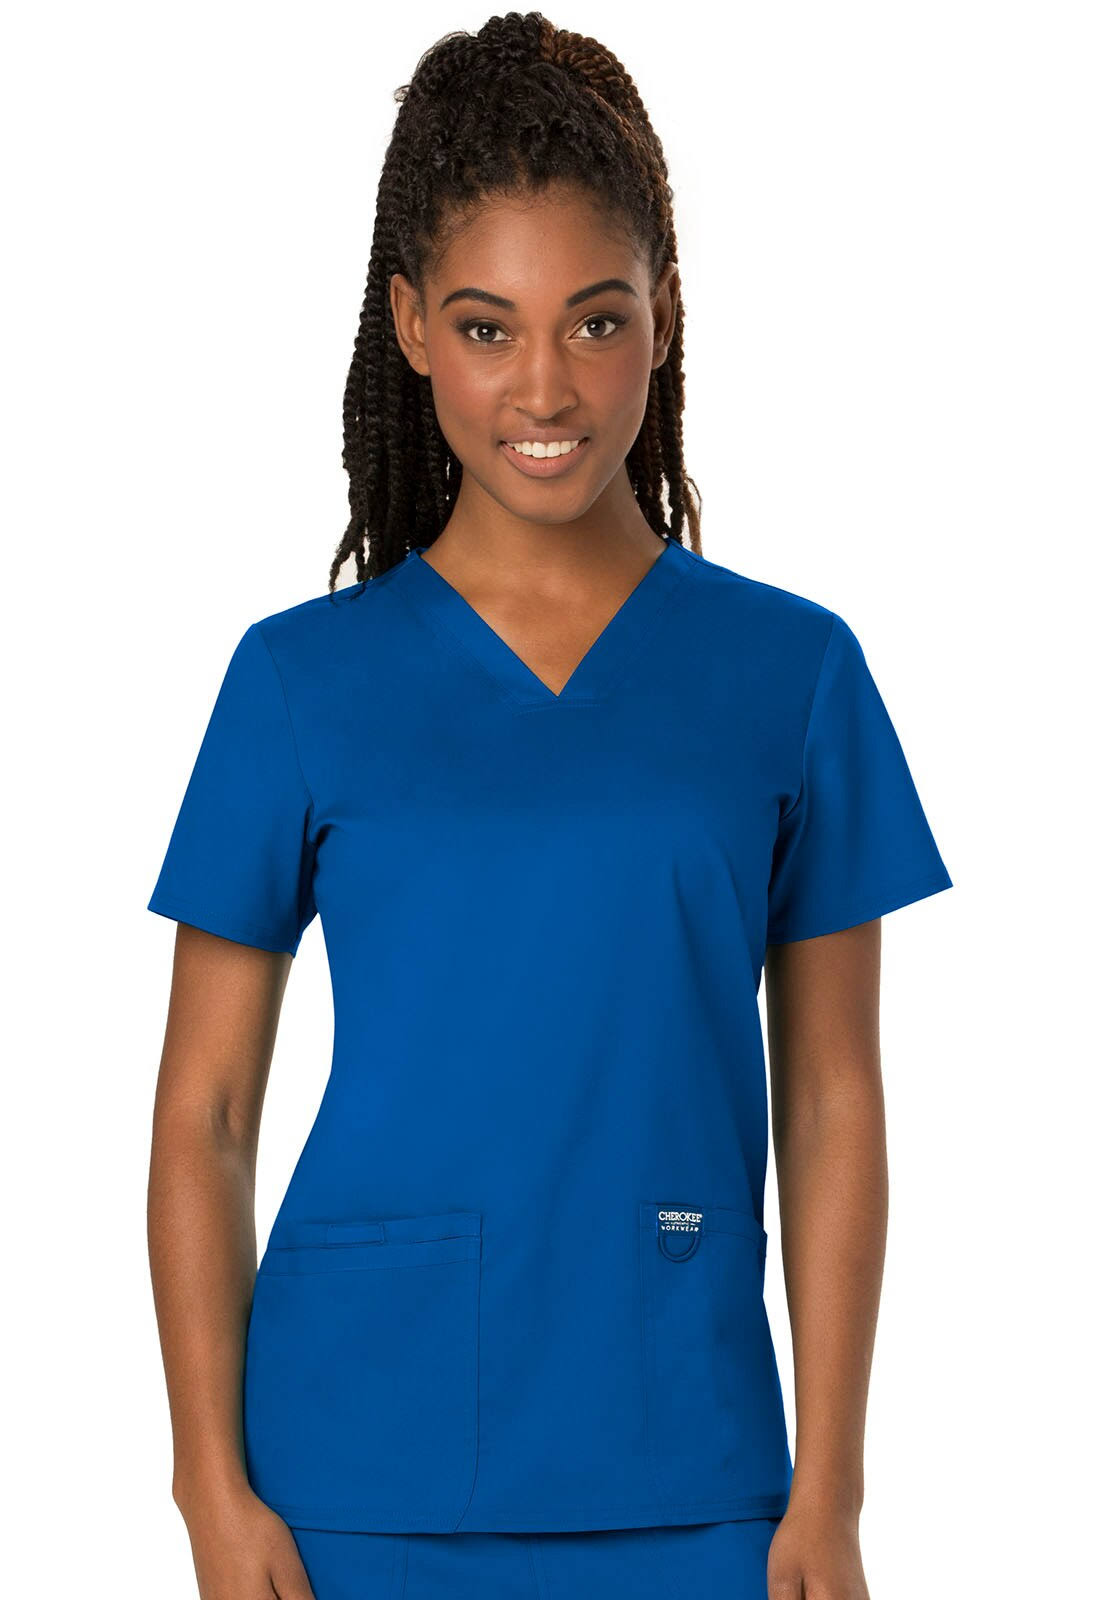 Cherokee Workwear Revolution V-Neck Scrub Top - L - Royal